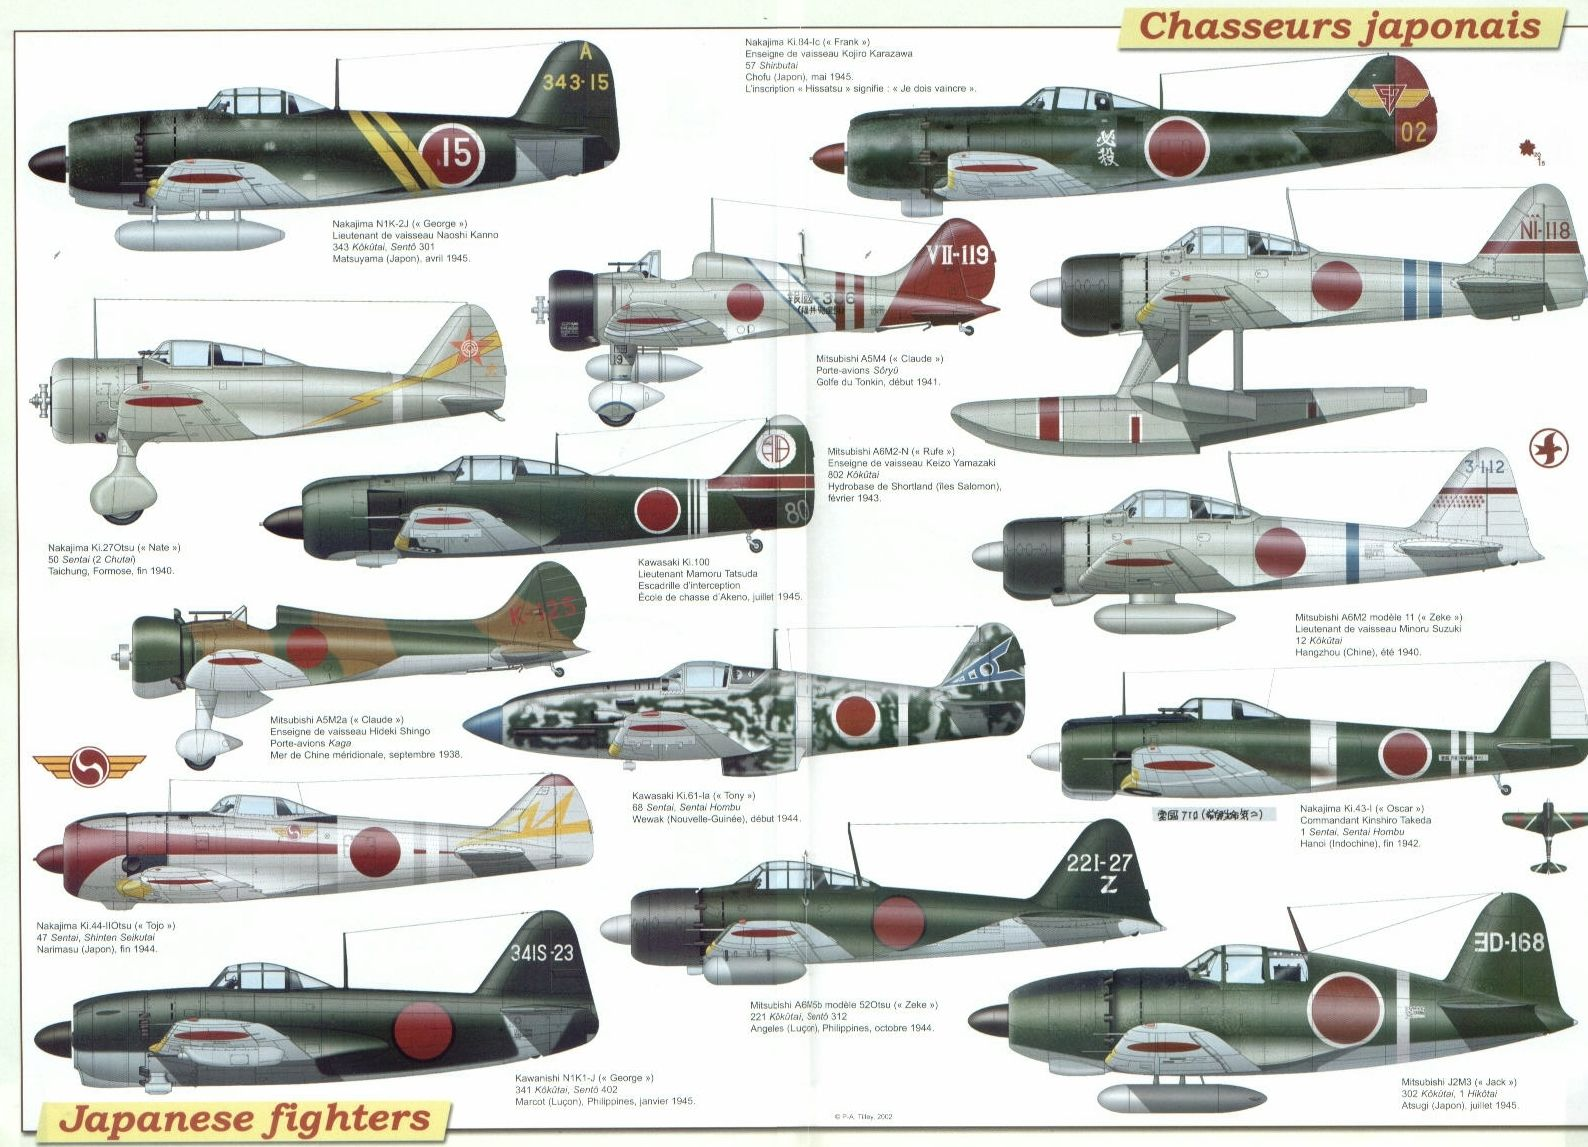 Japanese zero fighter view source more mitsubishi zero plans a japanese zero fighter view source more mitsubishi zero plans ajilbabcom portal blueprint malvernweather Choice Image